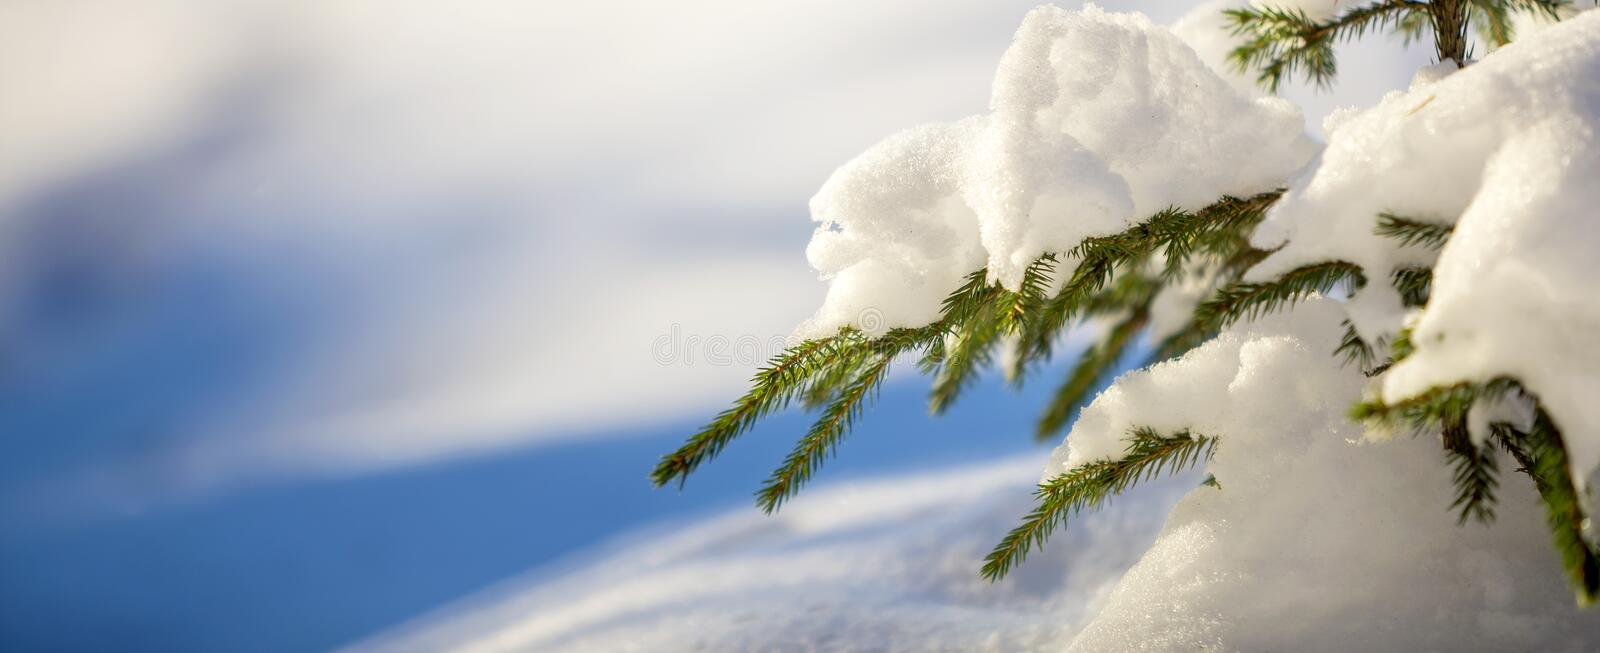 Young tender spruce tree brunches with green needles covered with deep snow and hoarfrost on bright blue and white colorful copy royalty free stock image